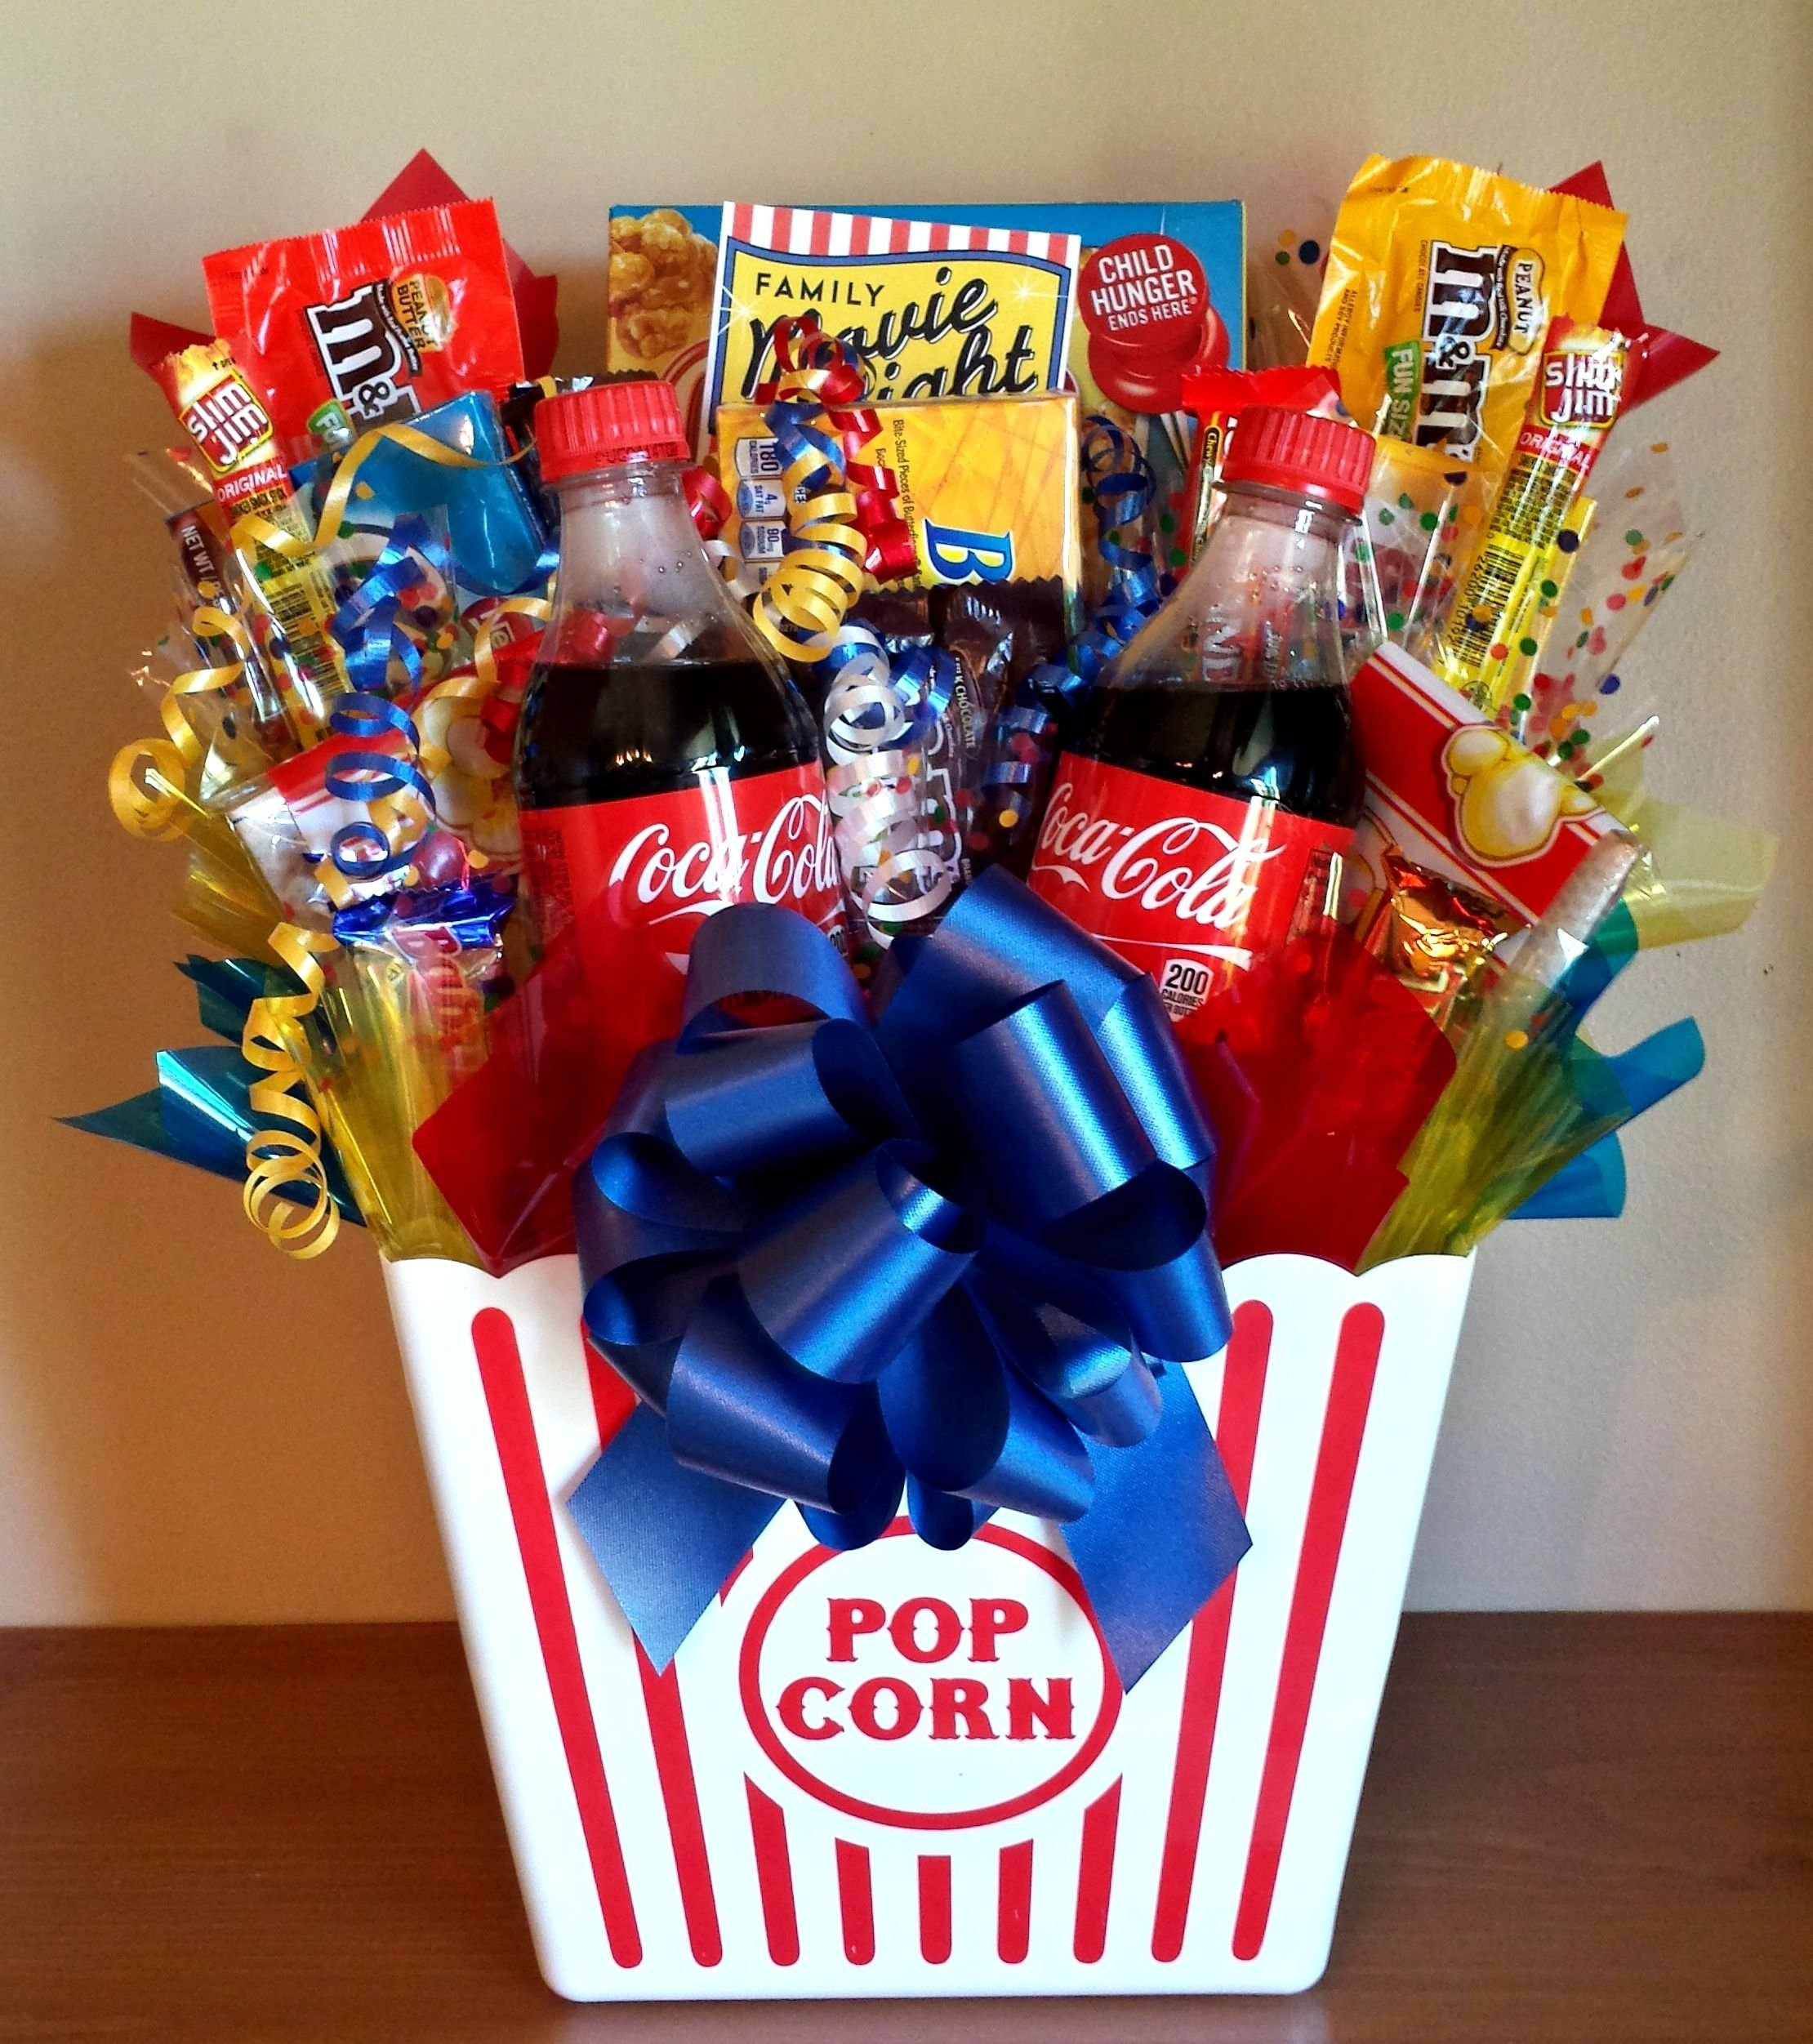 10 Stunning Family Night Gift Basket Ideas homemade gift ideas movie night bouquet with drinks sweets 2 2021